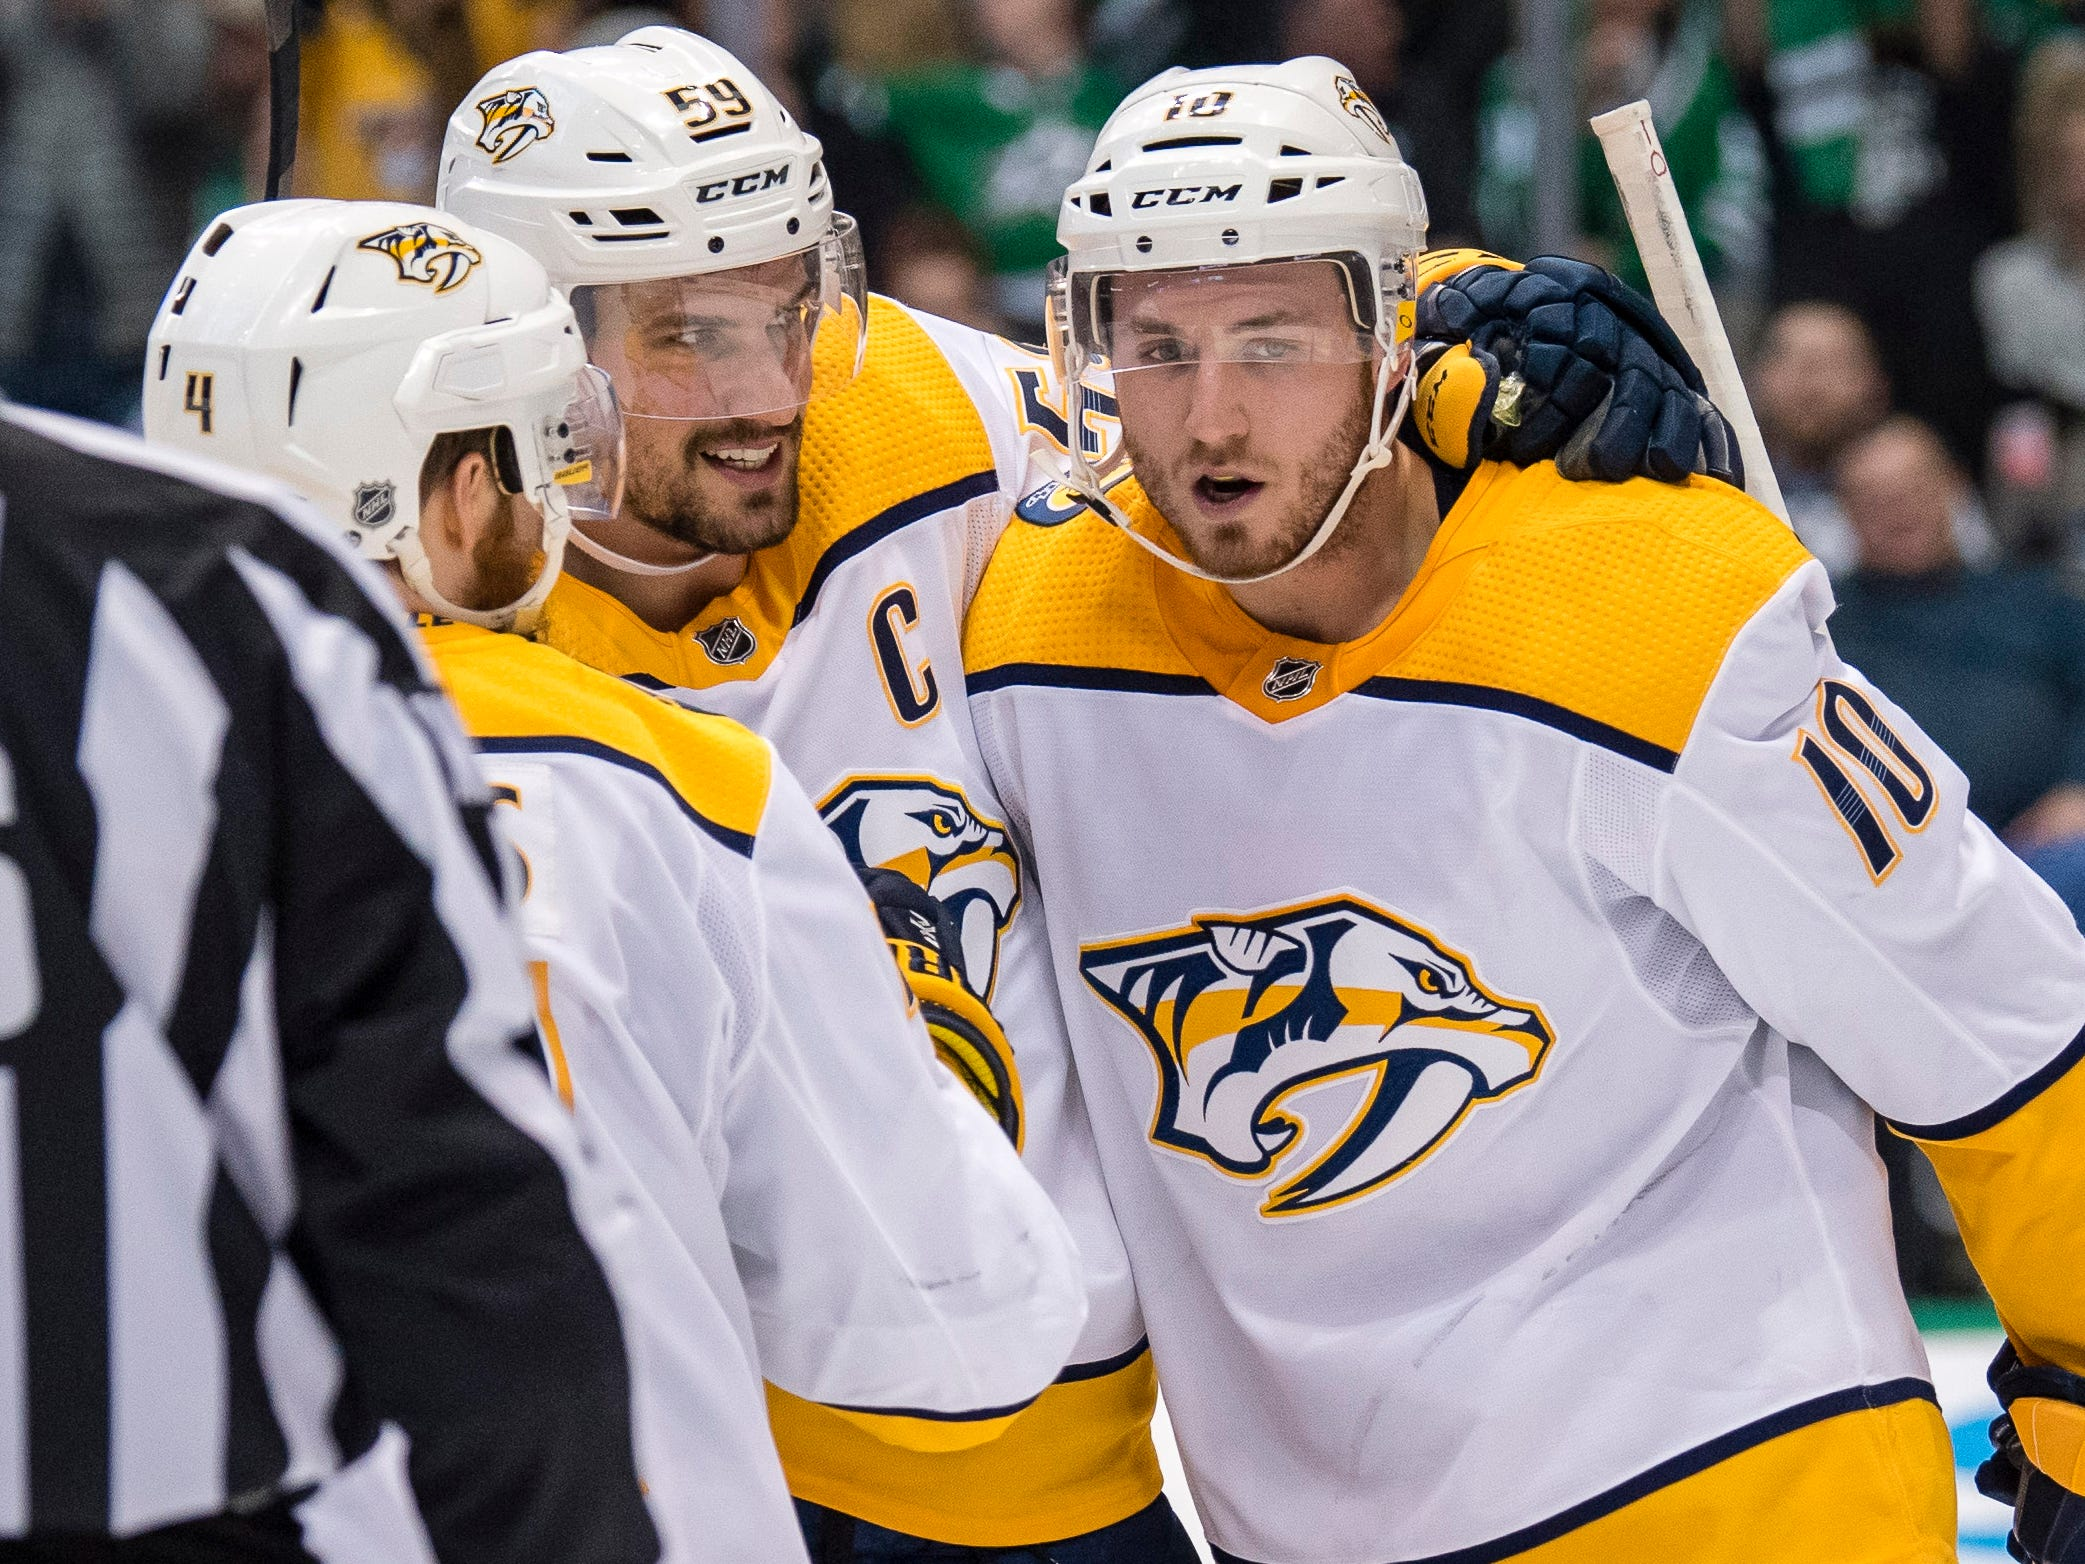 Feb. 19, 2019: Predators 5, Stars 3 -- Predators defenseman Ryan Ellis (4) and defenseman Roman Josi (59) and center Colton Sissons (10) celebrate the game winning goal by Josi during the third period against the Dallas Stars at the American Airlines Center.